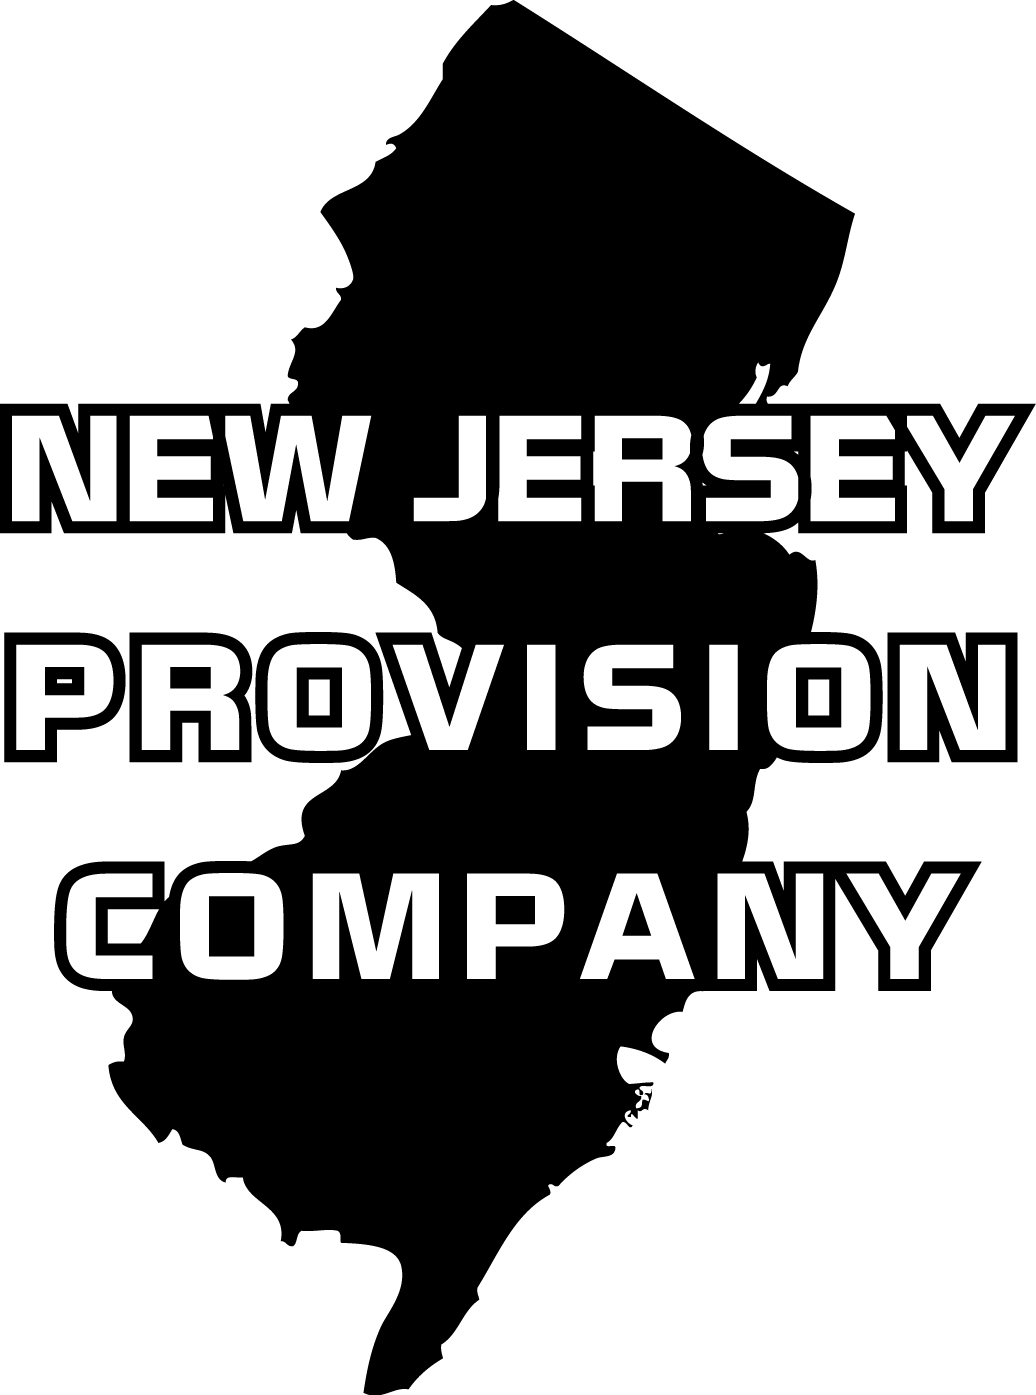 New Jersey Provision